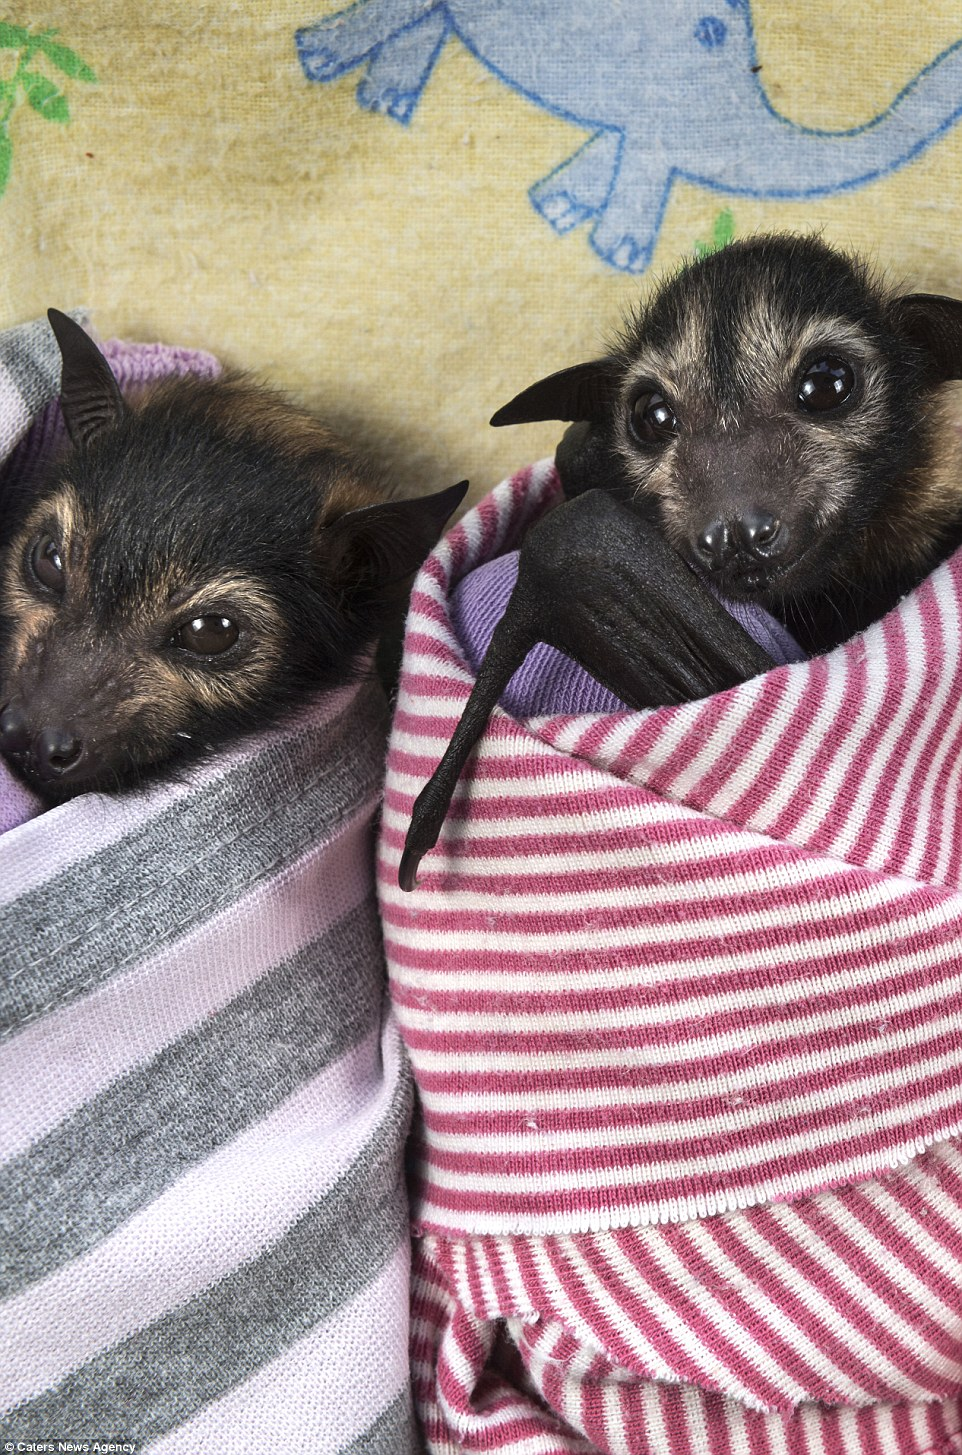 The furry critters can be seen swaddled in colourful blankets while they star innocently at the camera